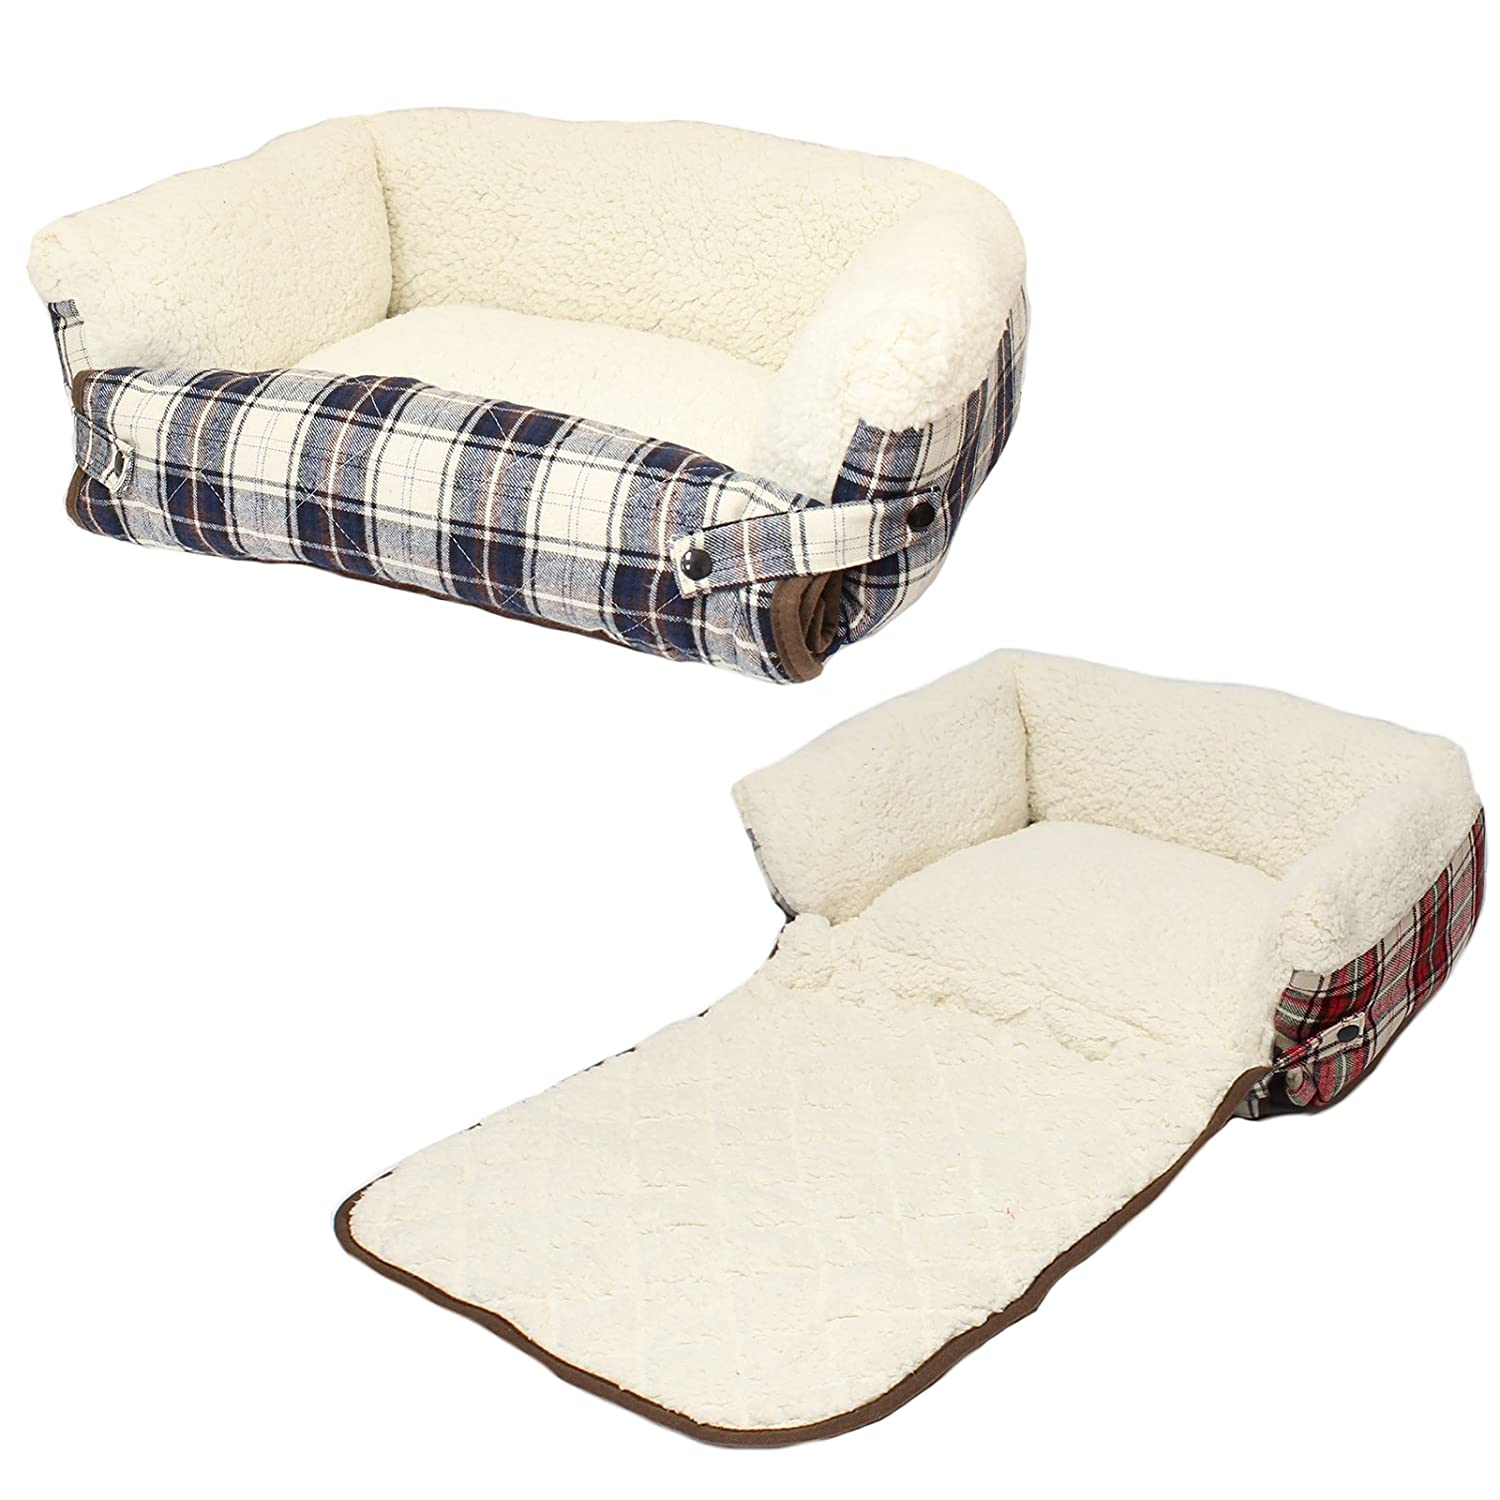 Me & My Dog Cat Fold Out Bed with Sofa Protector Available in